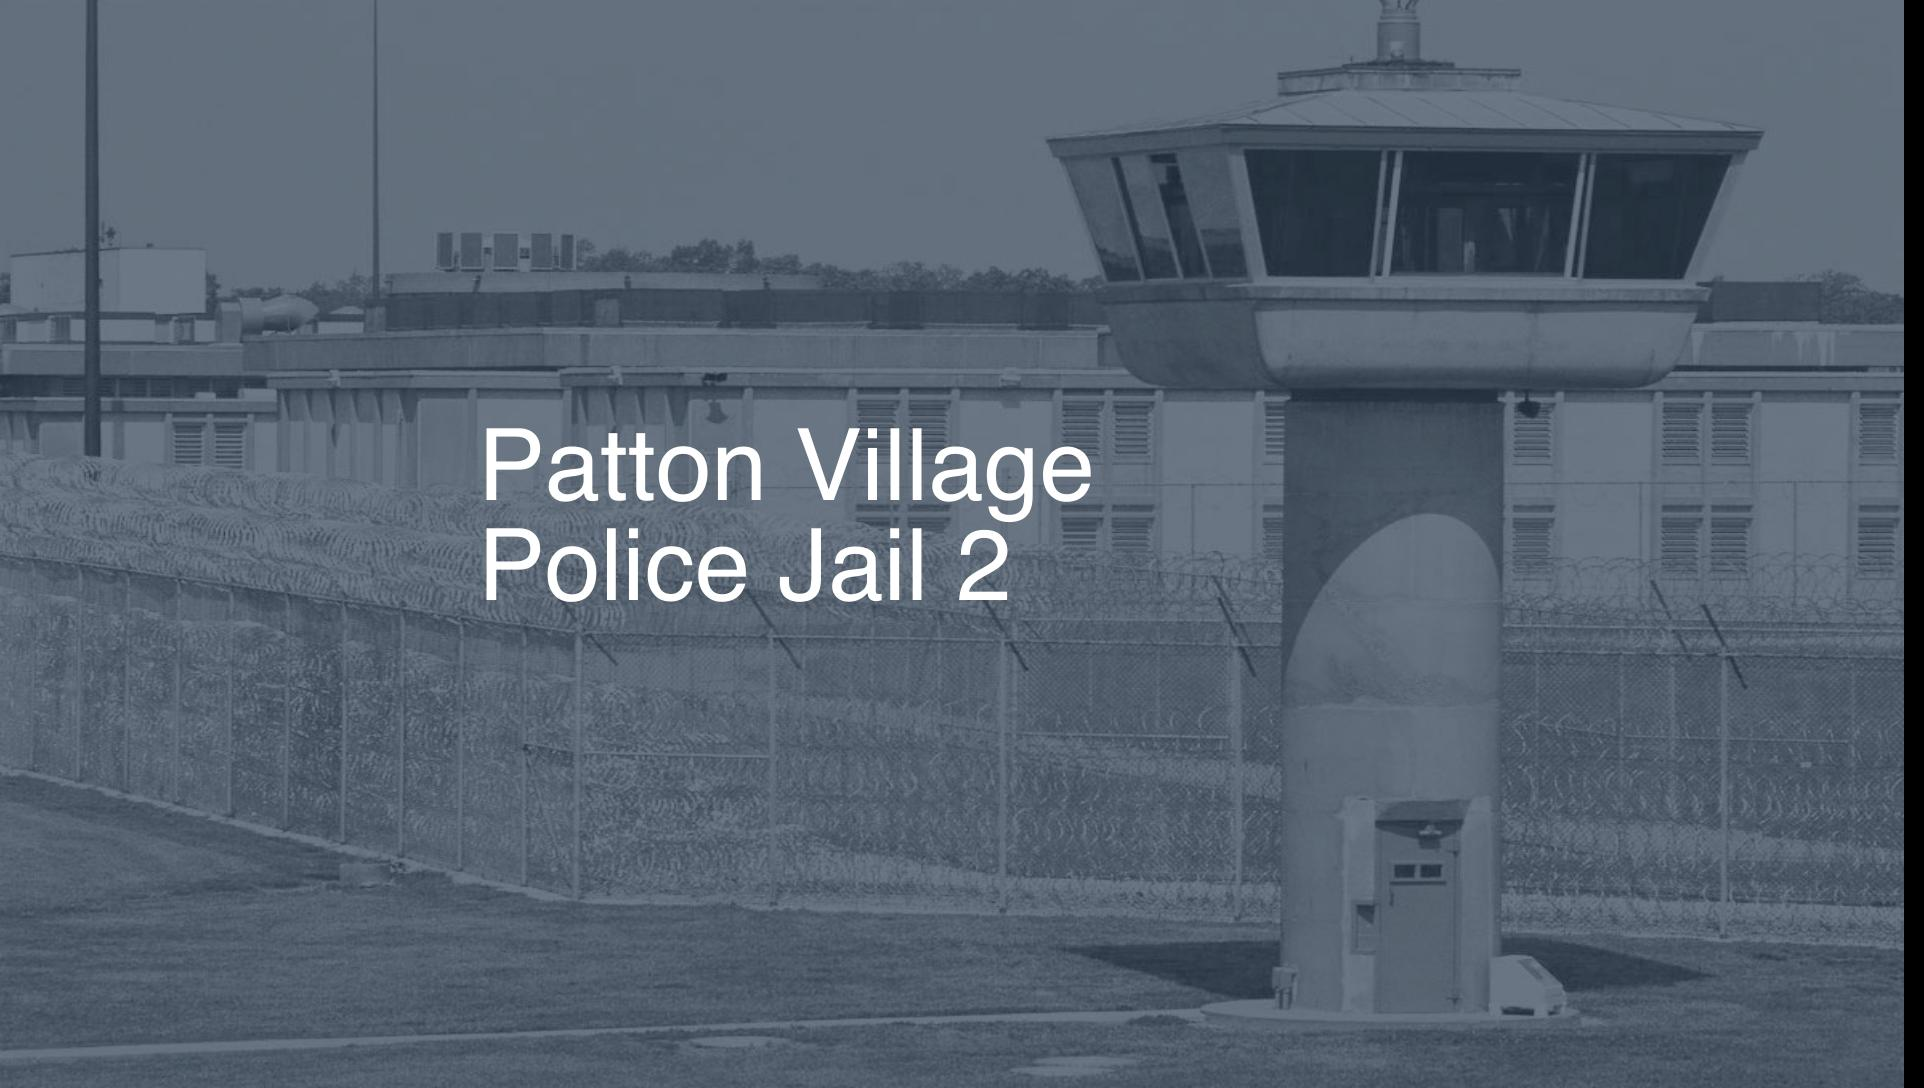 Patton Village Police Jail correctional facility picture